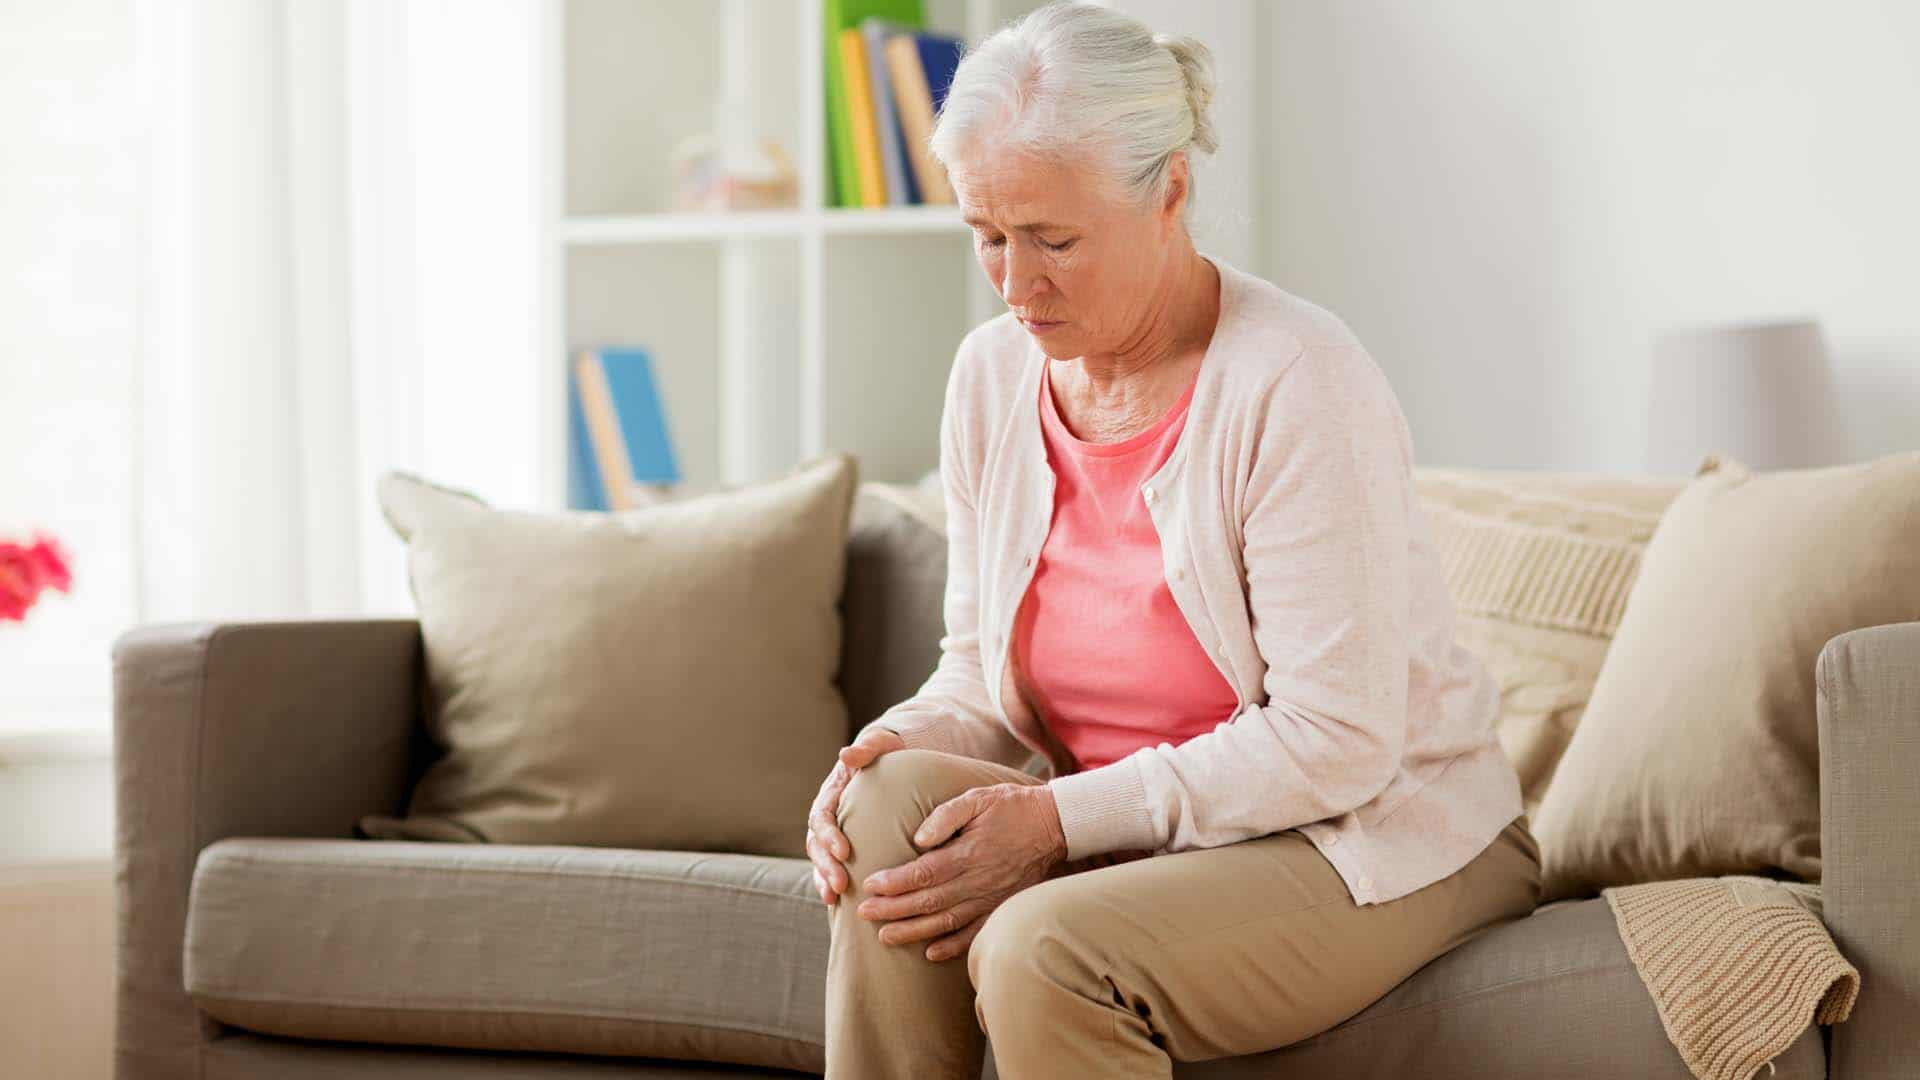 Senior woman sitting on couch grabbing knee and in pain